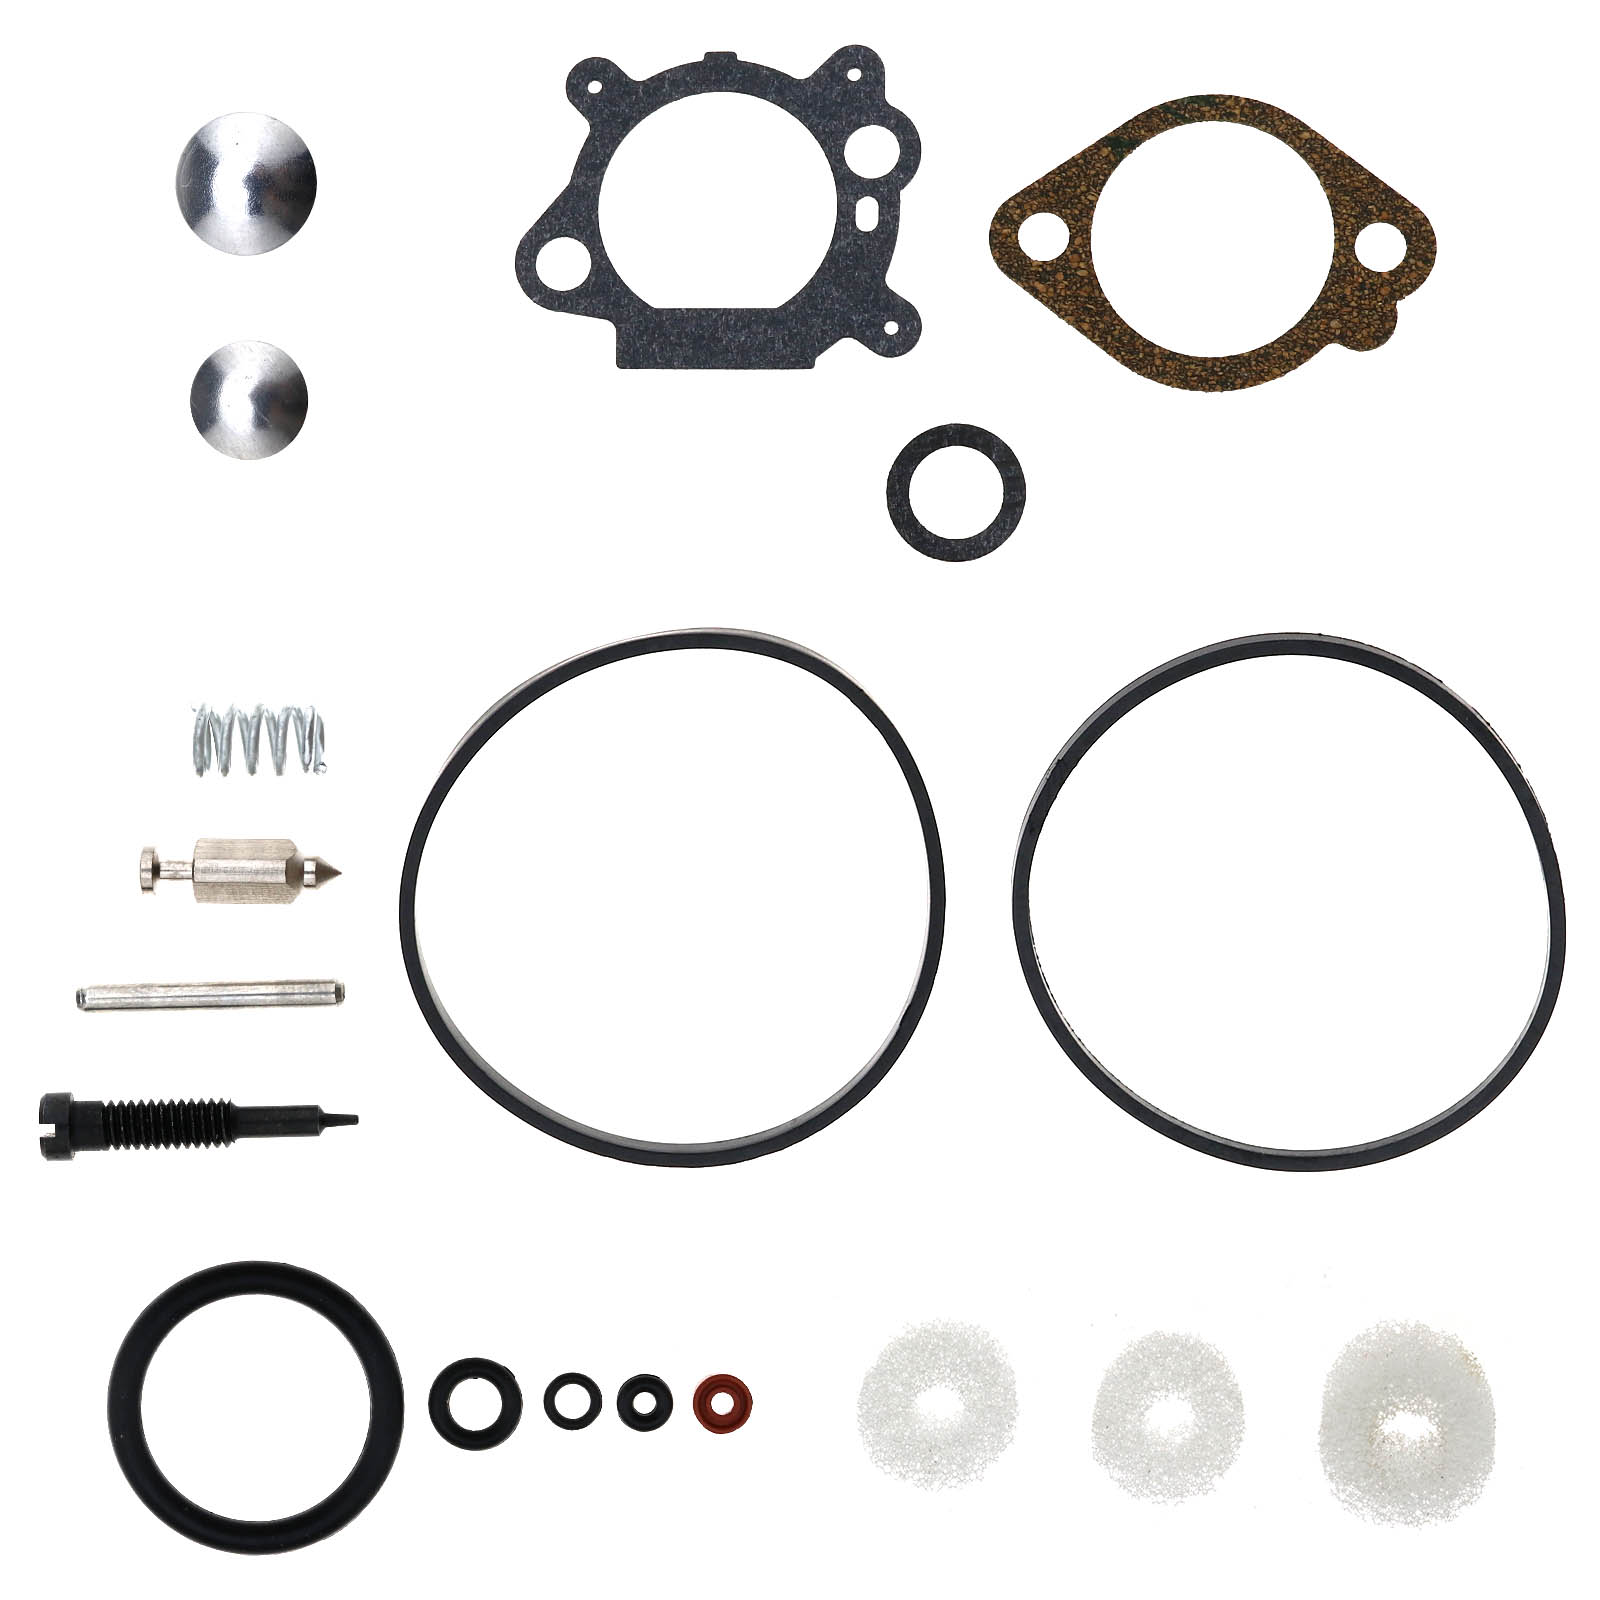 AIR CLEANER FILTER GASKET FITS BRIGGS And STRATTON MAX And QUANTUM ENGINES Lawn Mower Parts & Accessories